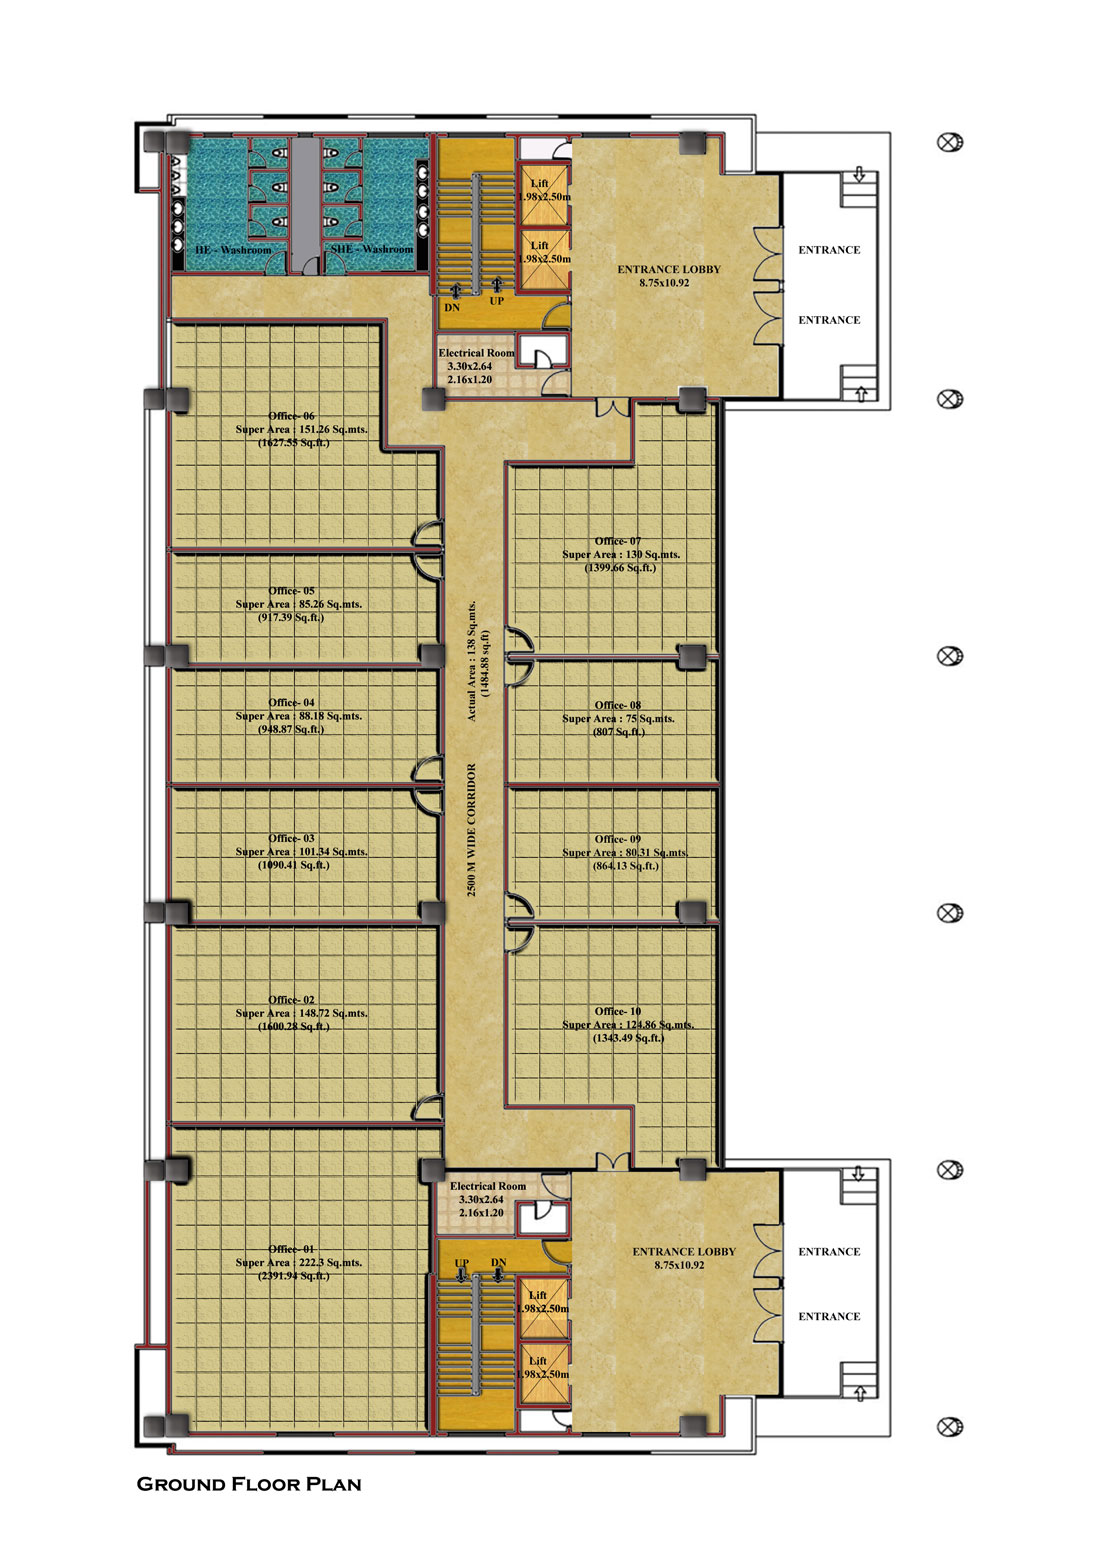 Comcalculate floor square footage crowdbuild for for Floor calculator math